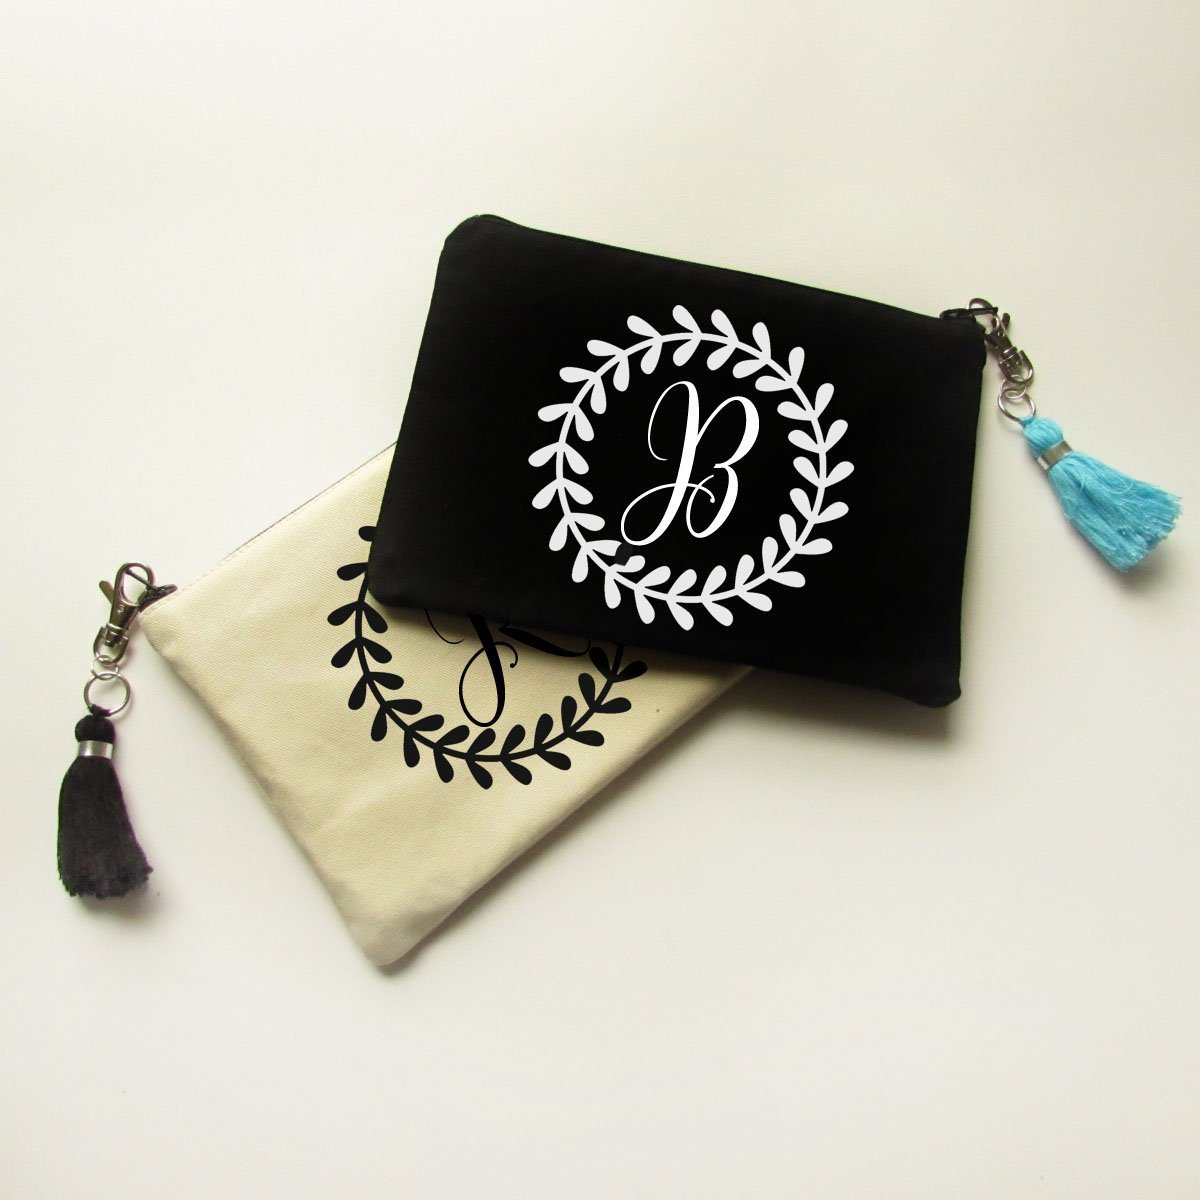 Personalized Makeup Bag with Tassel Gift for Bridesmaids - Canvas Pouch with Name & Bridal Party Title - M30